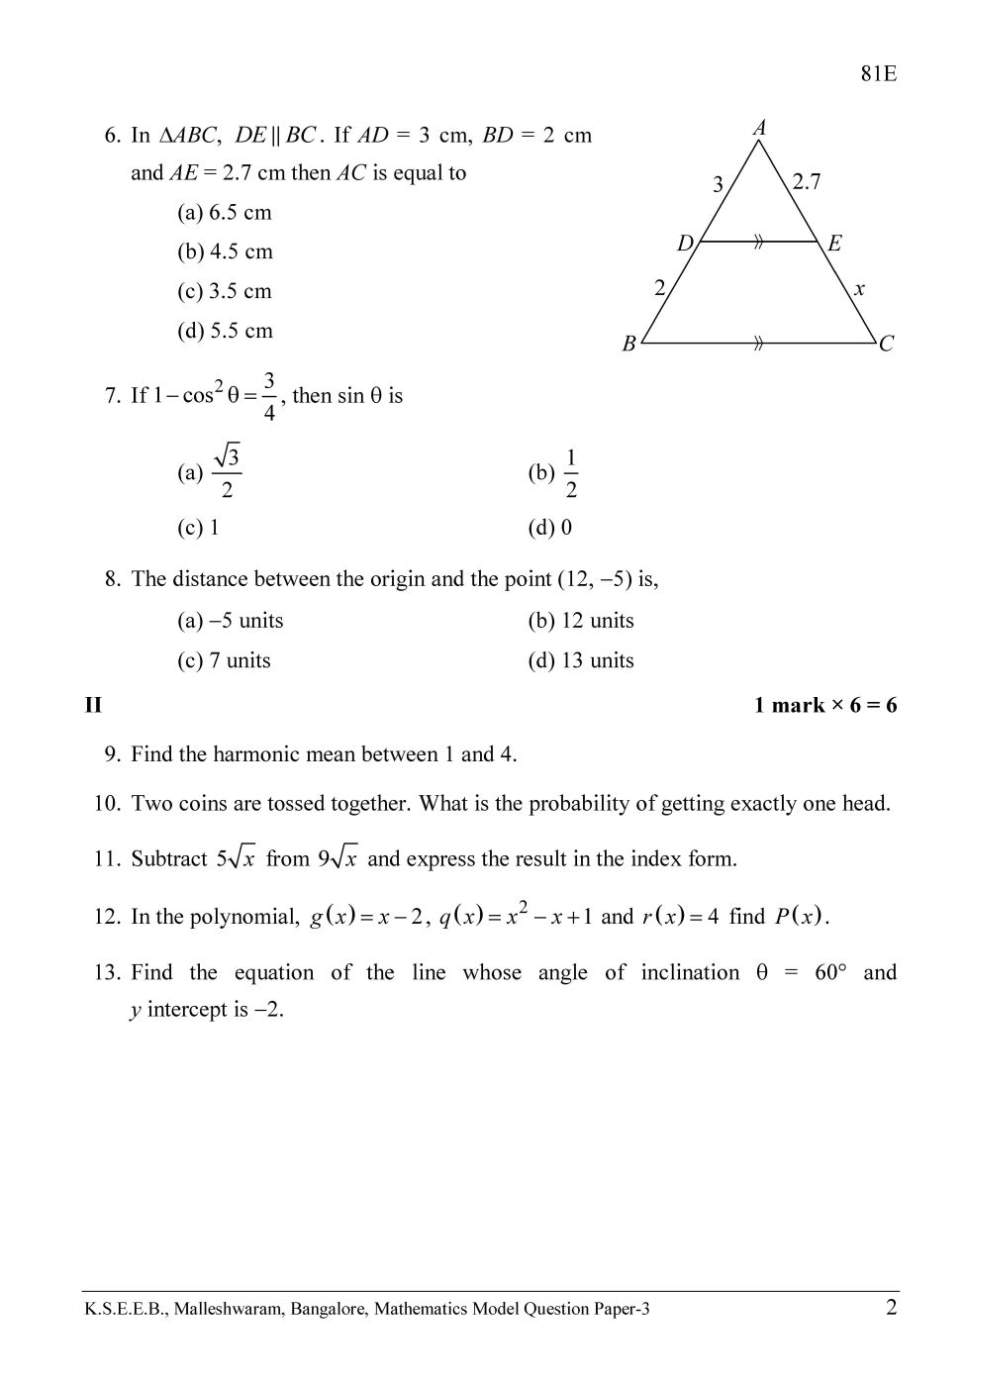 Midterm exam 2018 model question paper